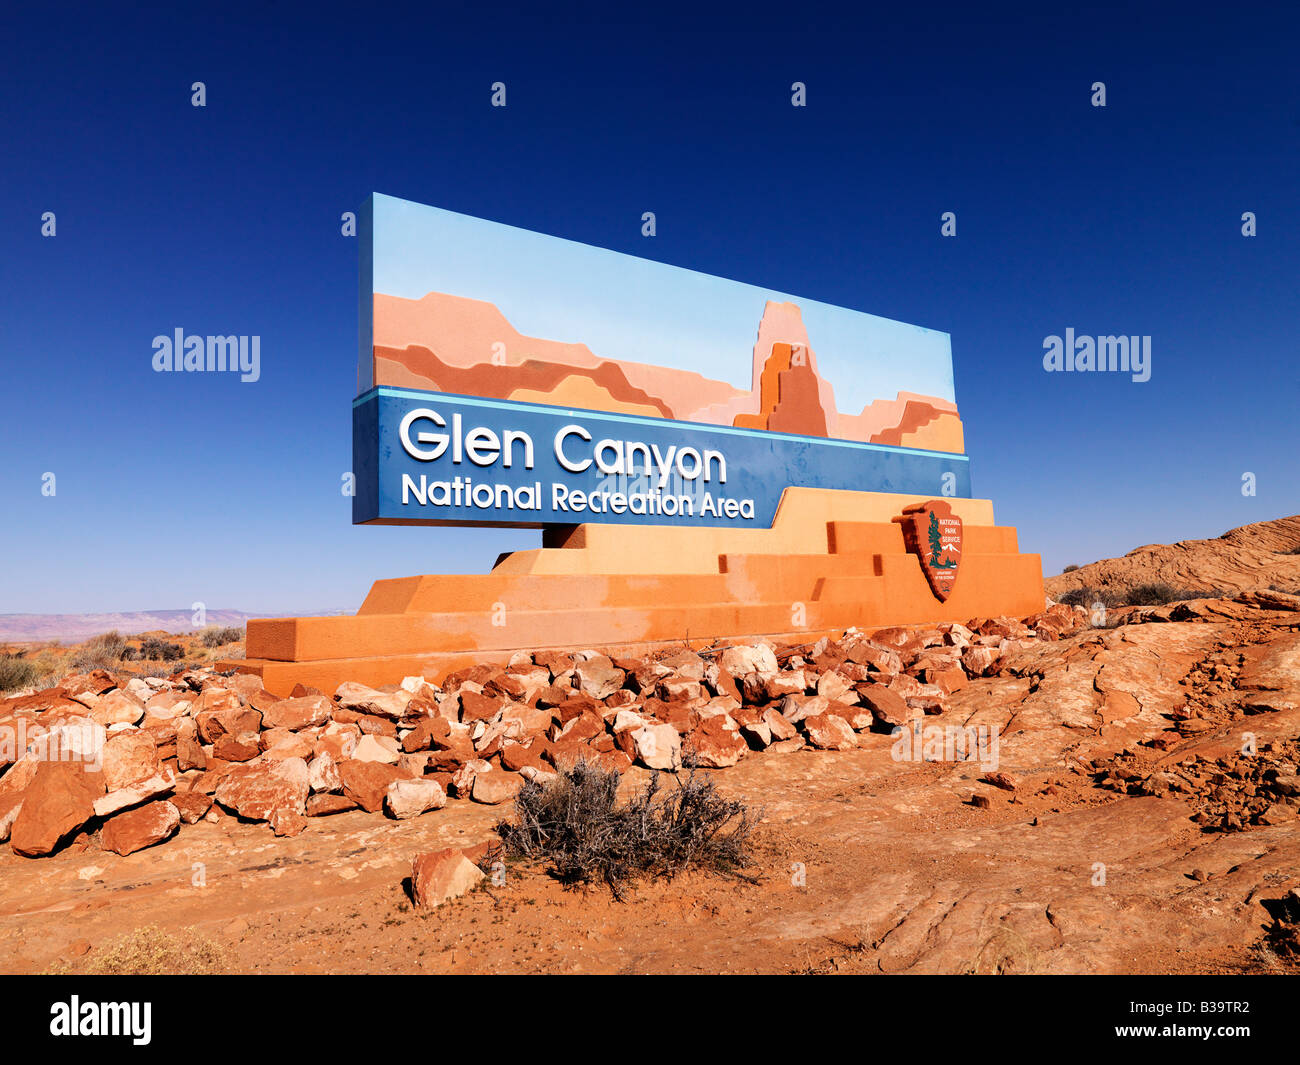 Paesaggio di Glen Canyon National Recreation ingresso sign in Arizona Stati Uniti Immagini Stock